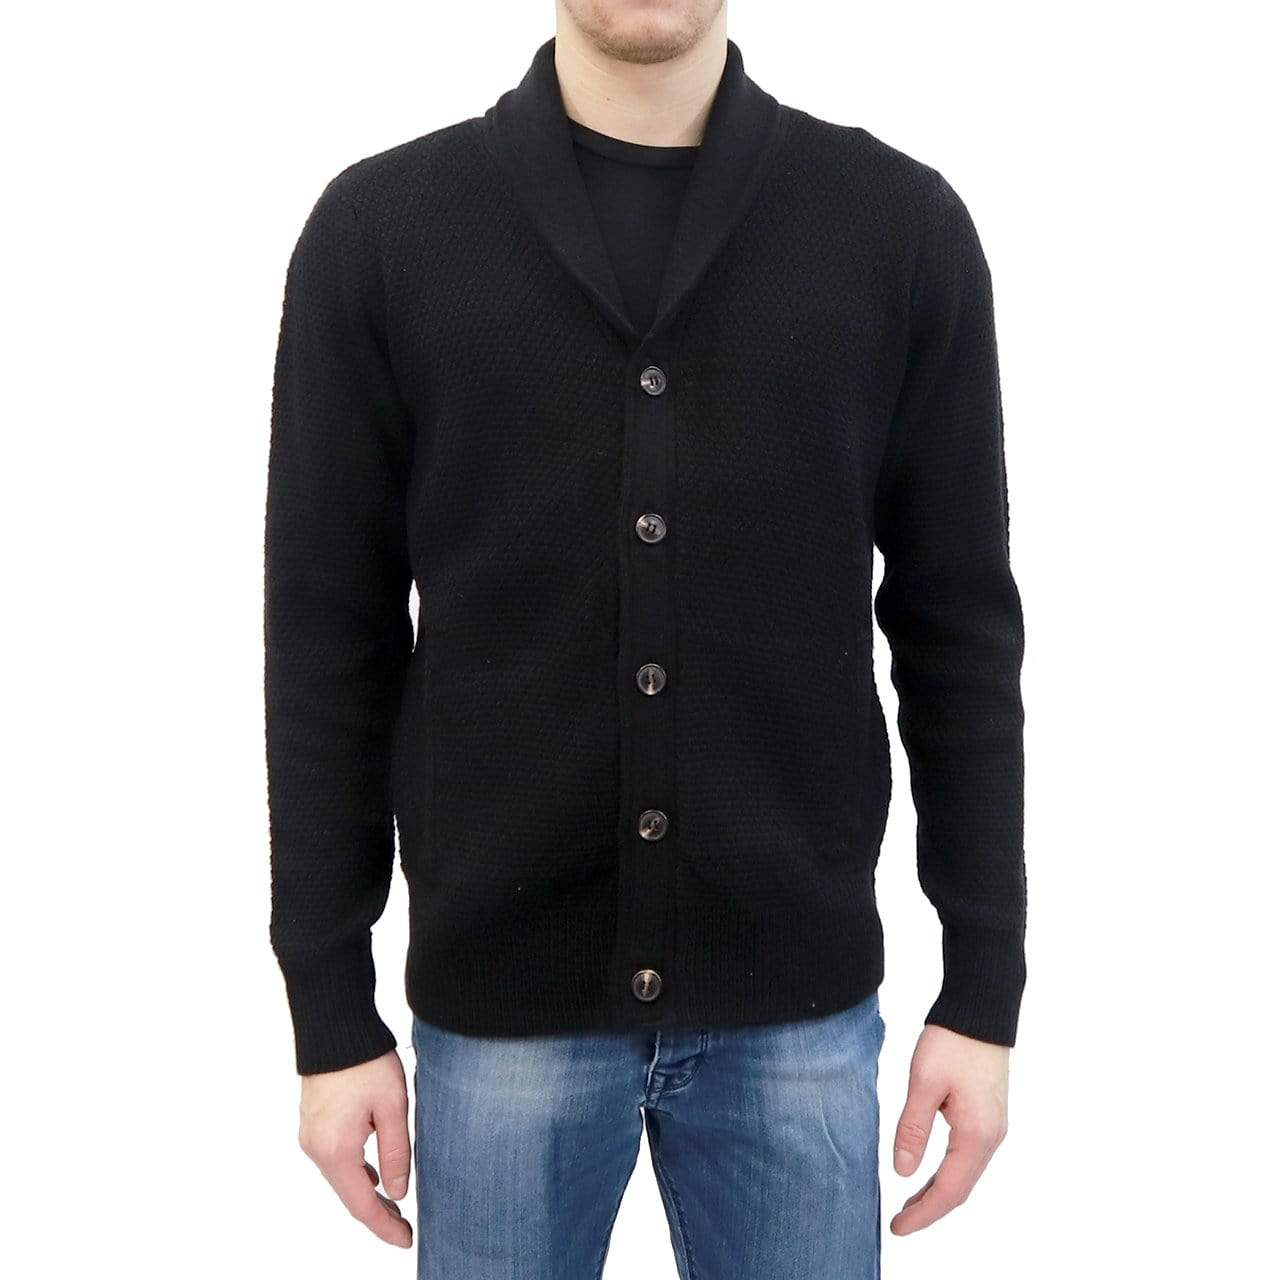 RD International Style Button Up Cardigan